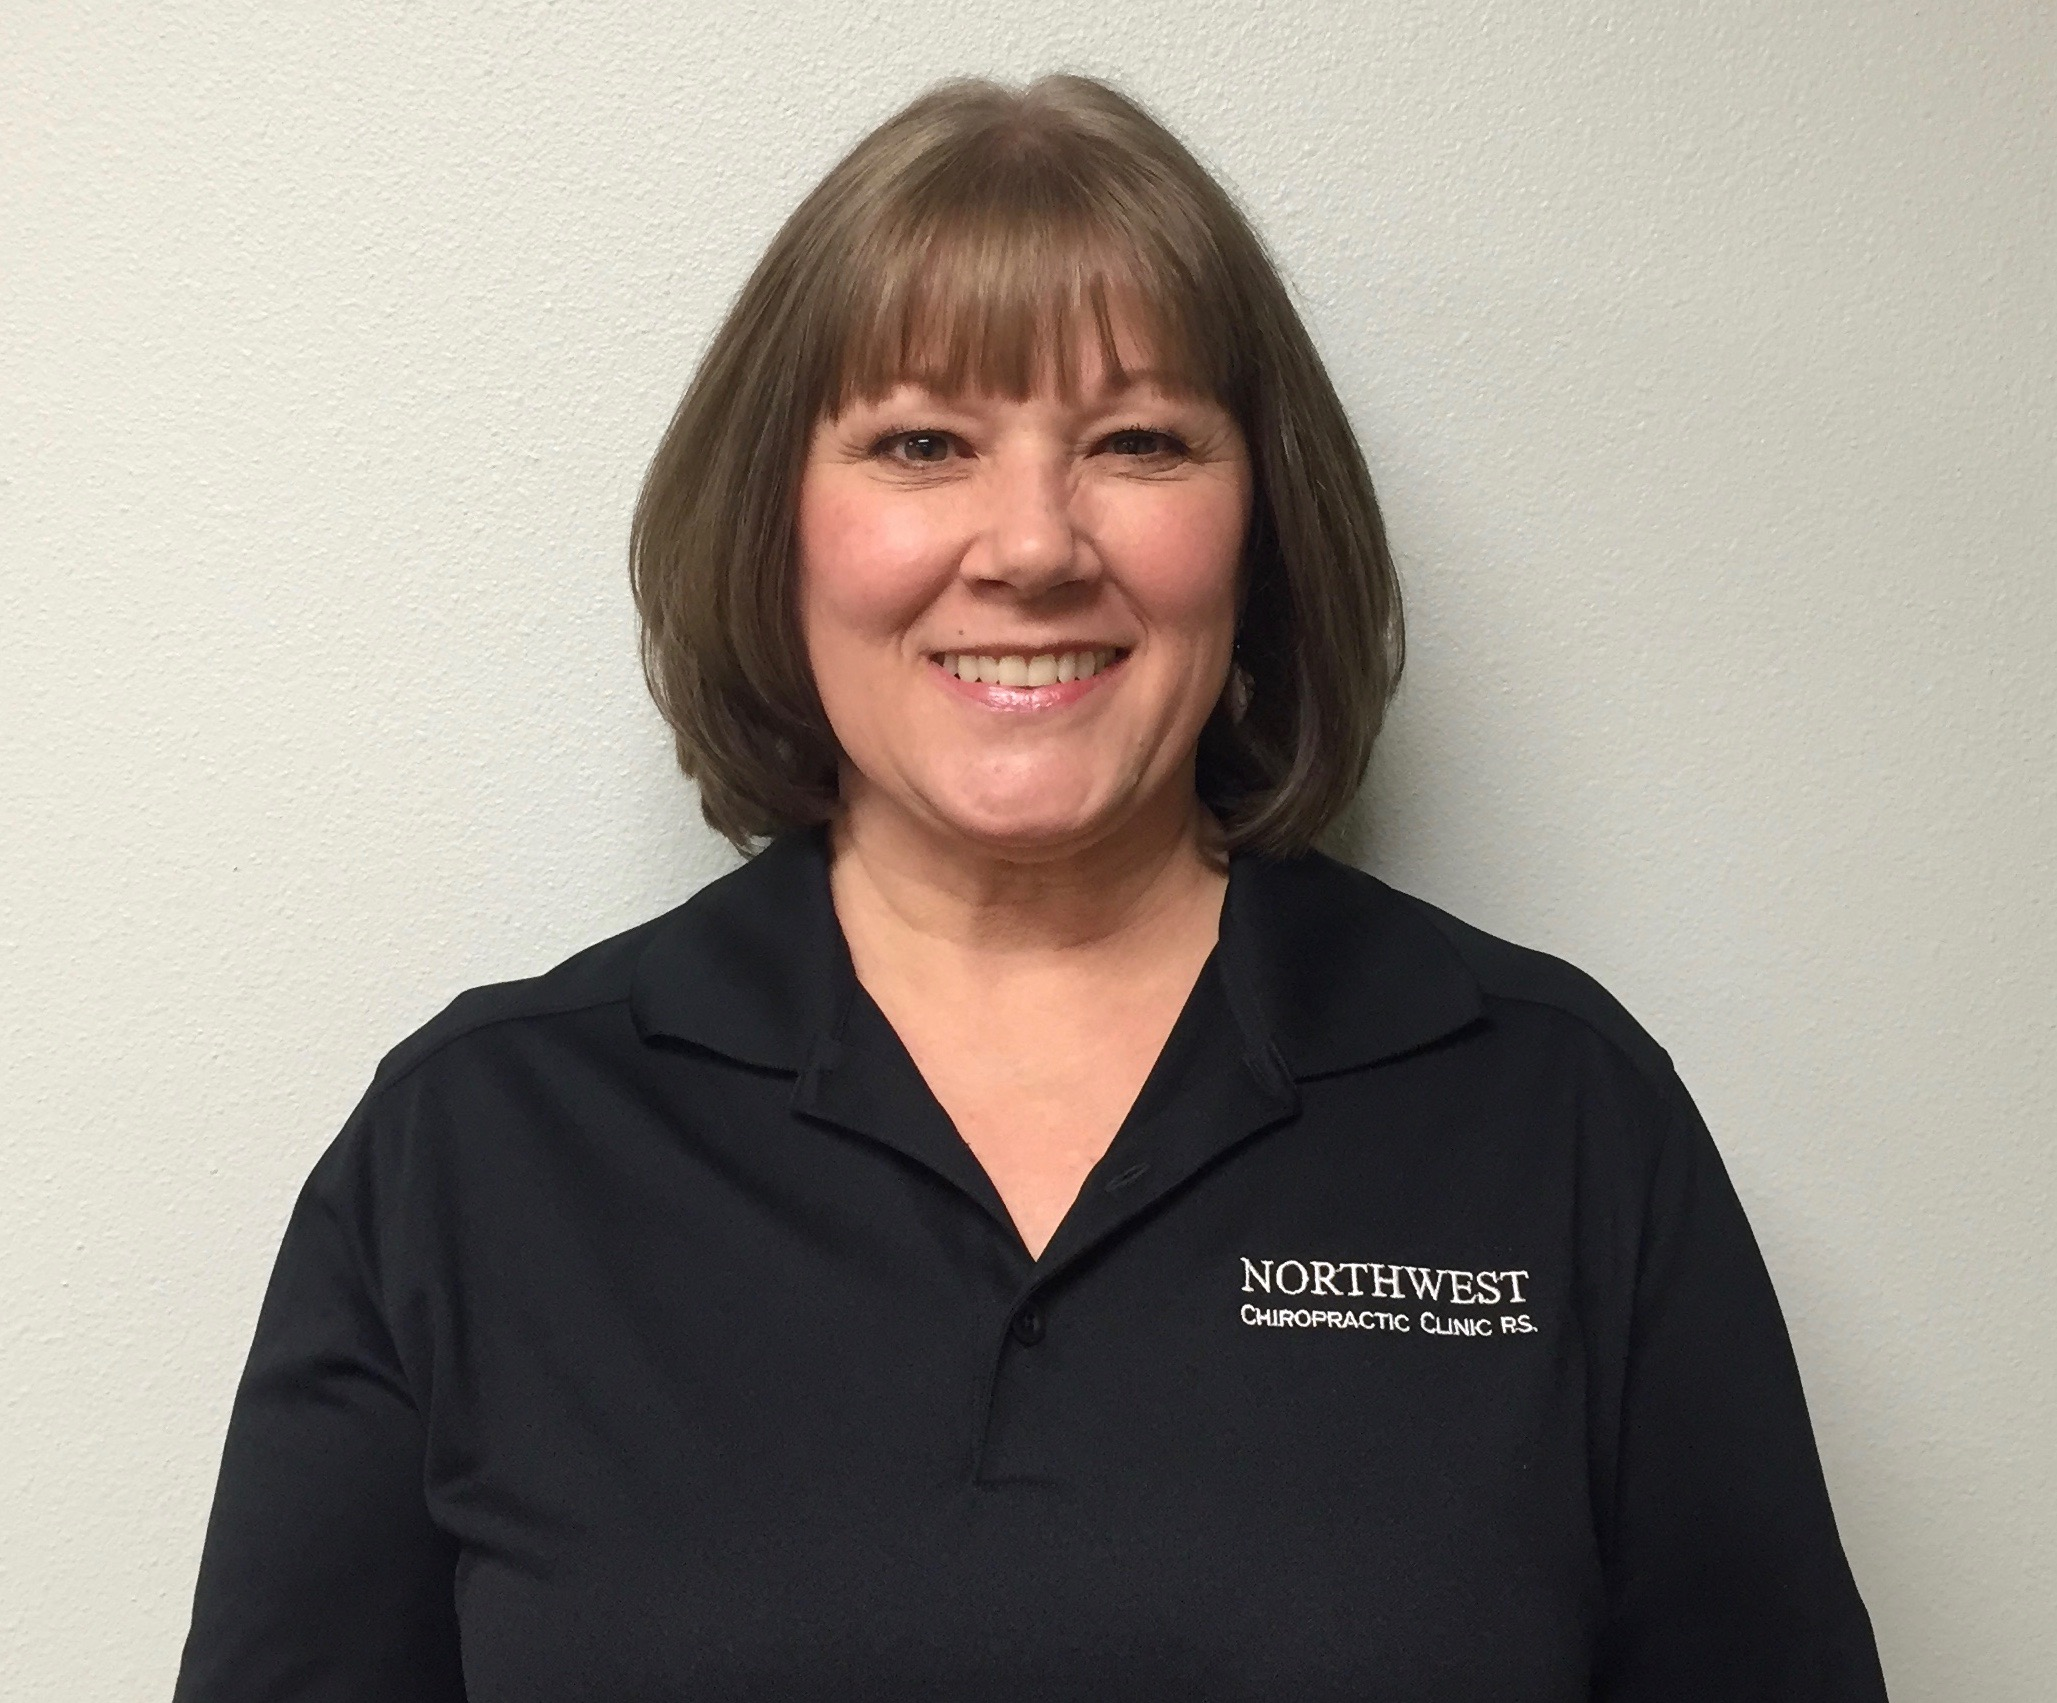 Melody Rindal - Northwest Chiropractic Clinic